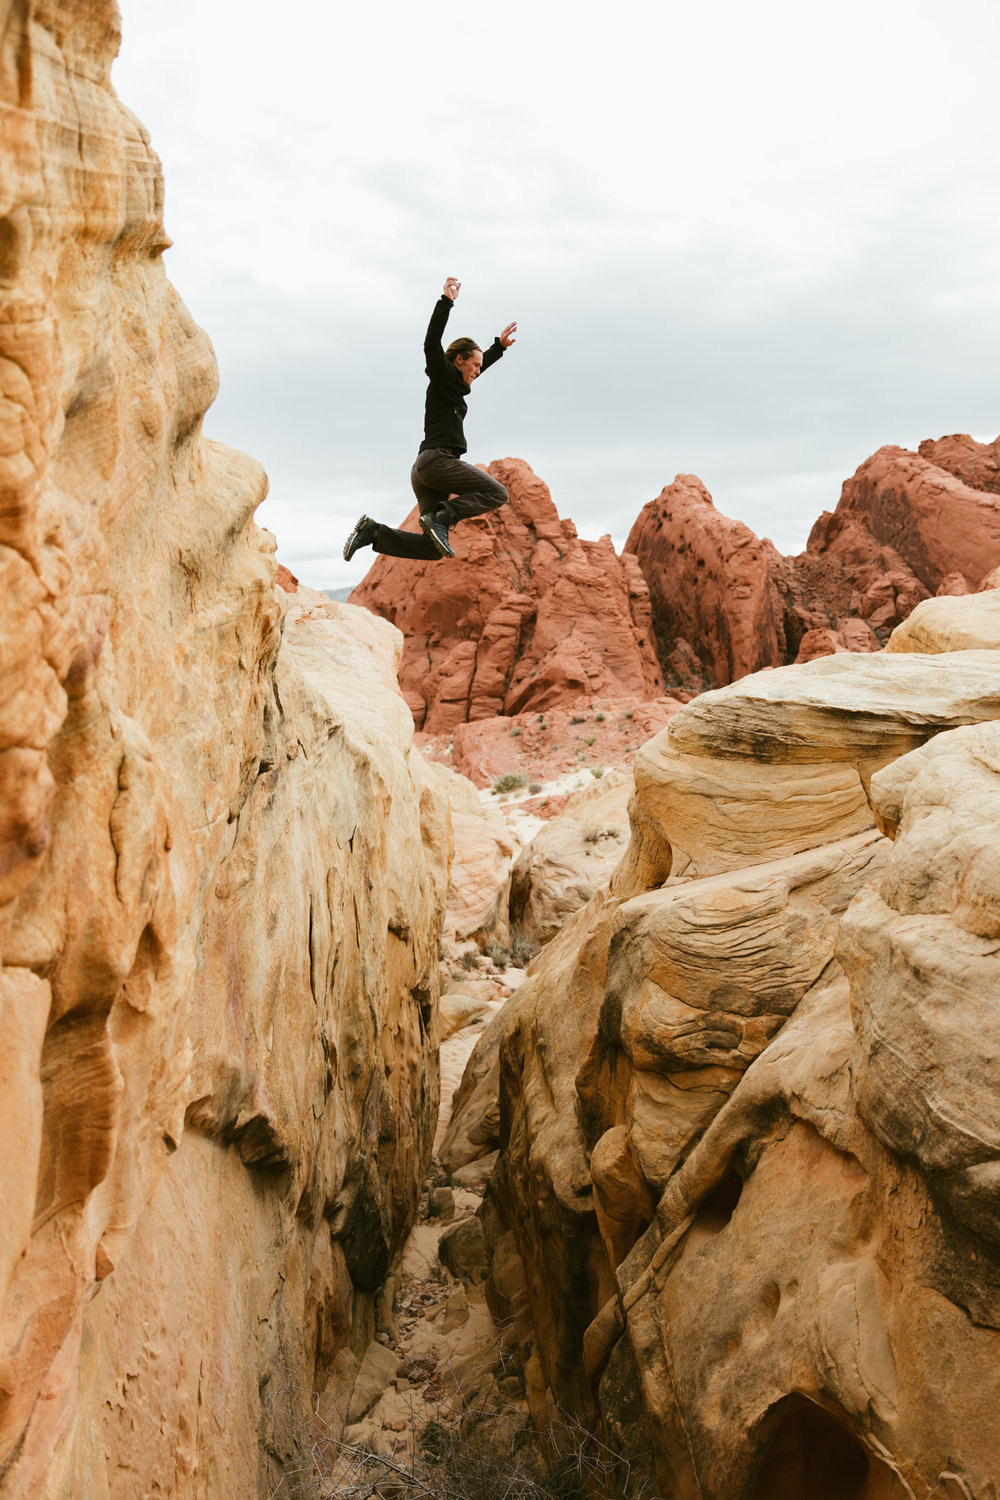 exploring valley of fire state park | utah and california adventure elopement photographers | the hearnes adventure photography | www.thehearnes.com